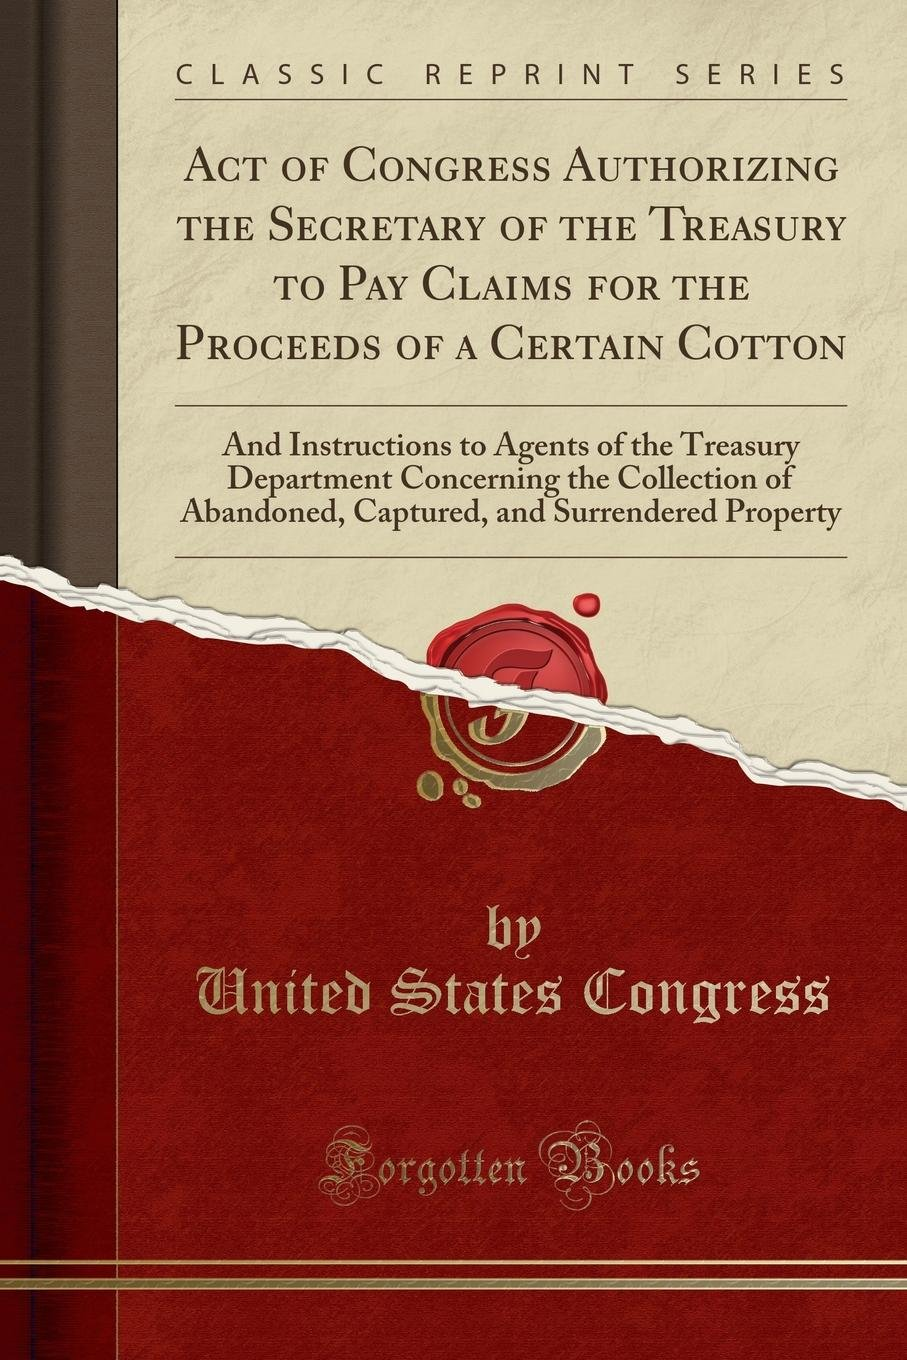 Act of Congress Authorizing the Secretary of the Treasury to Pay Claims for the Proceeds of a Certain Cotton: And Instructions to Agents of the ... Abandoned, Captured, and Surrendered Property ebook